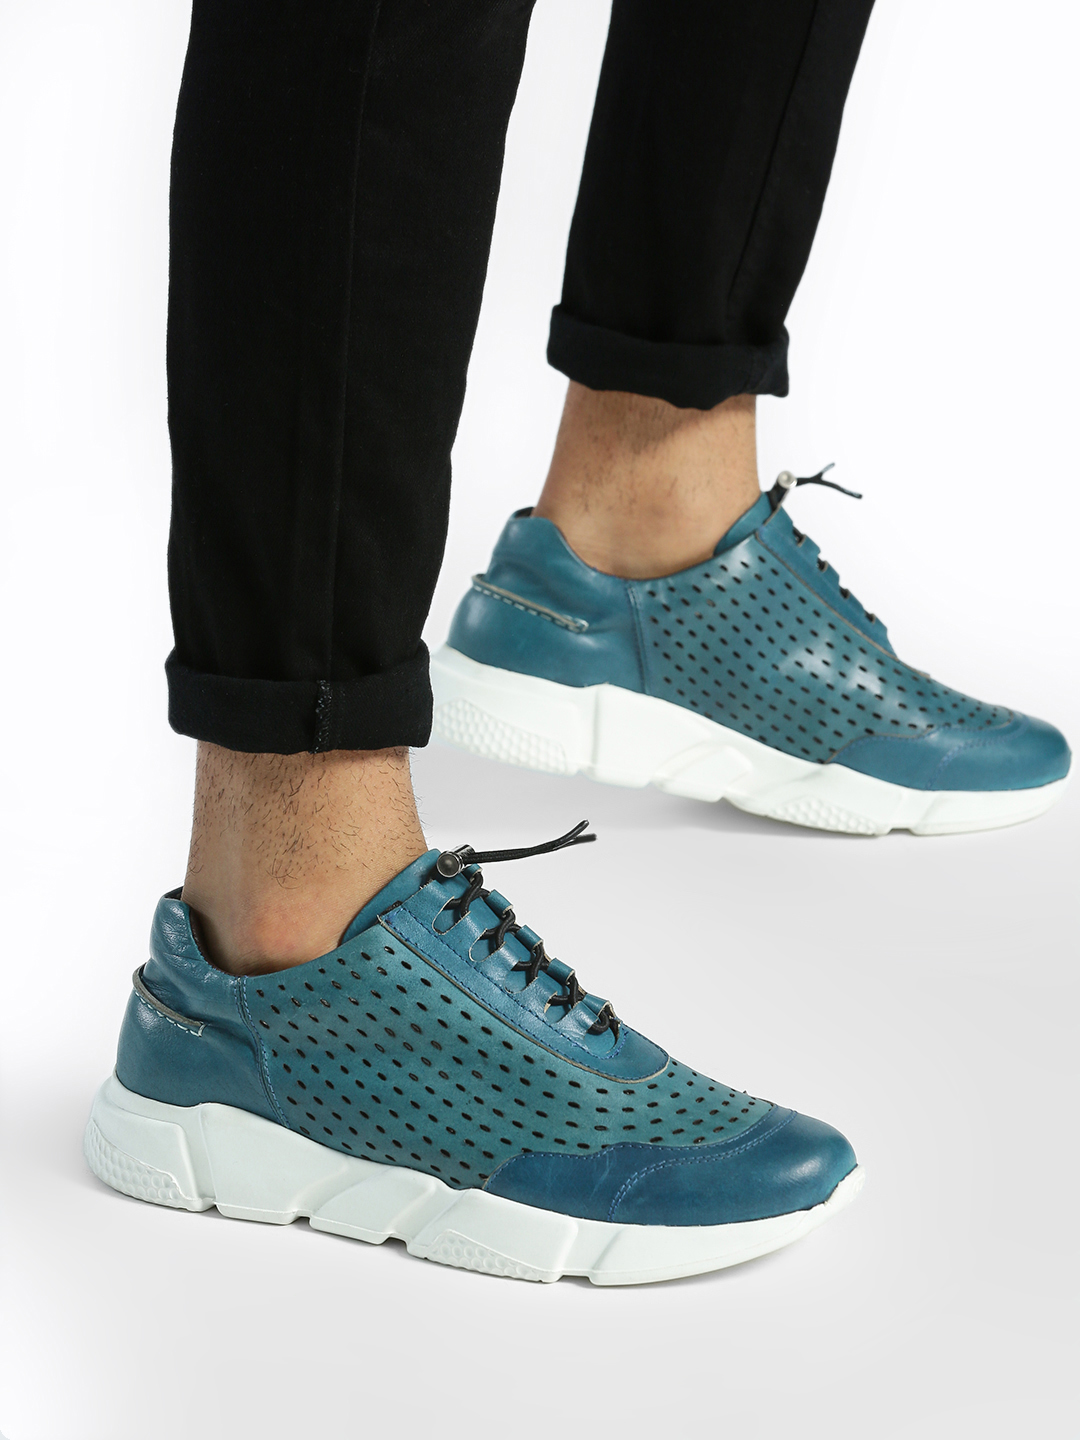 YOHO Blue Lazer Cut Cord Feed Leather Sneakers 1